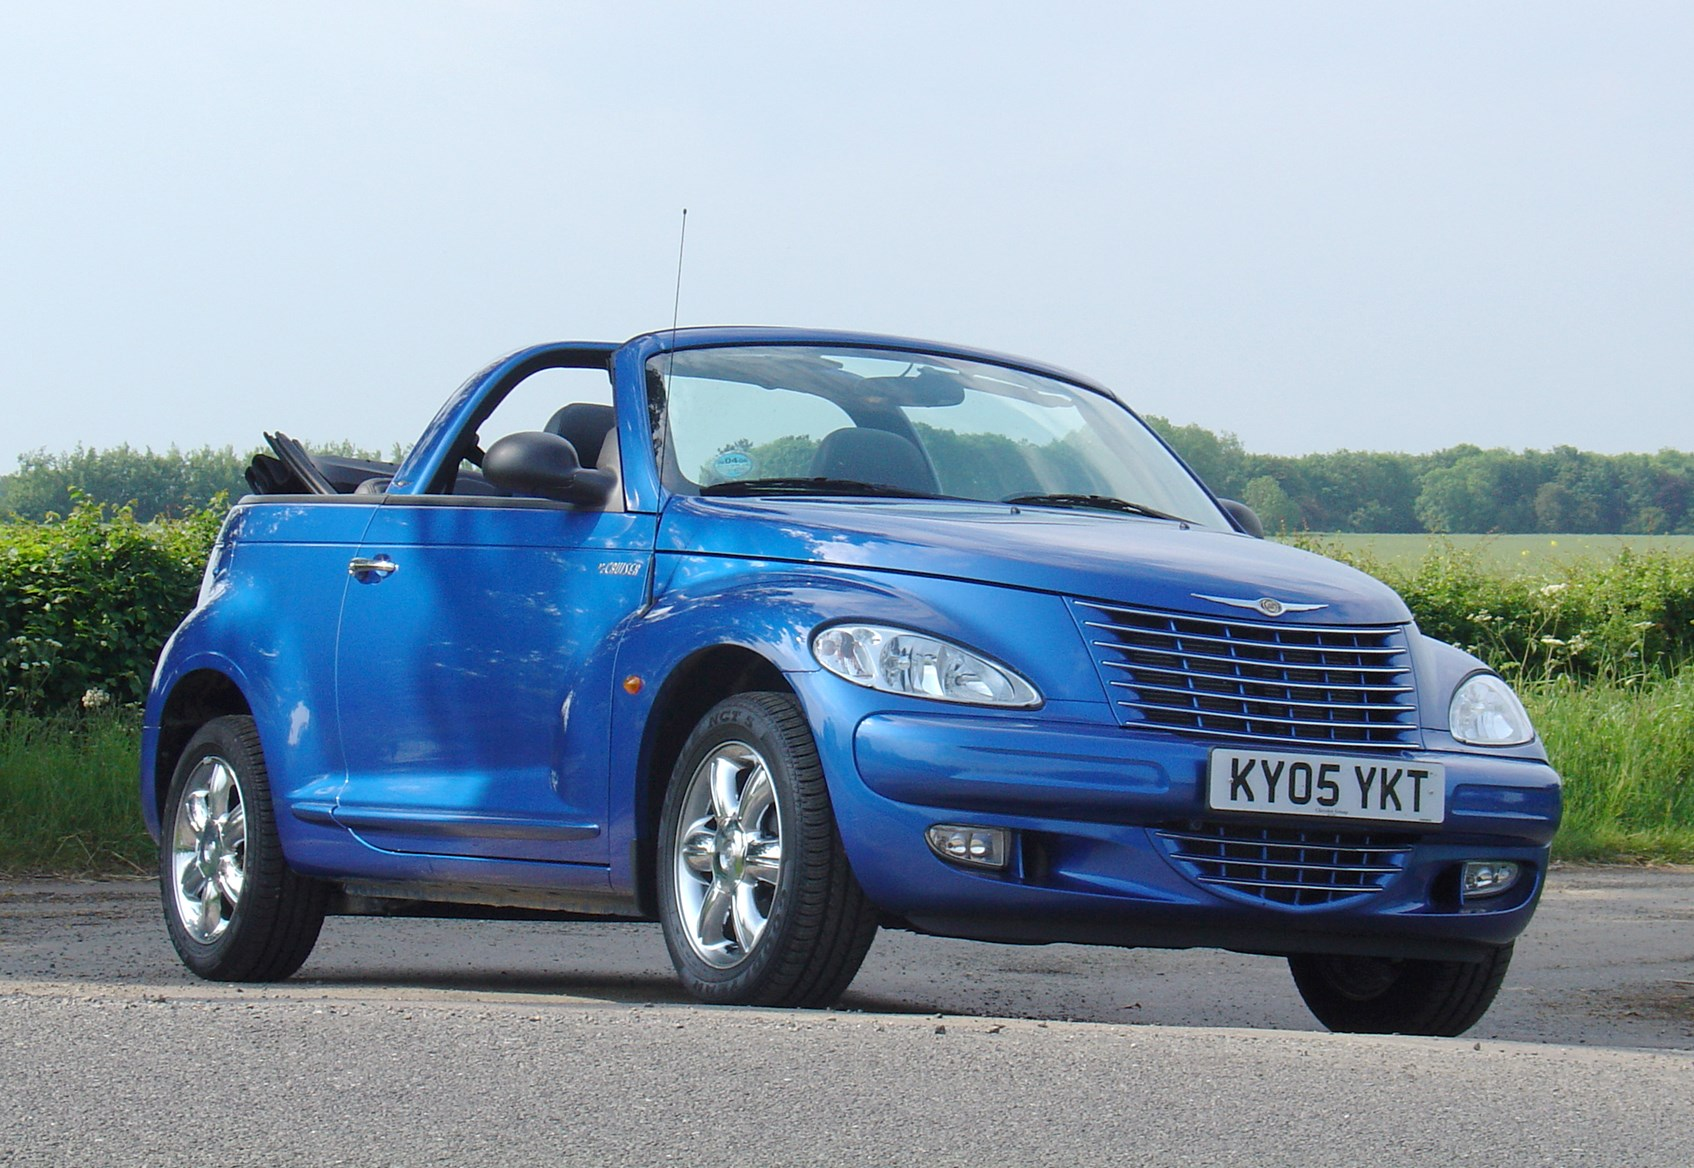 2008 Chrysler 300 For Sale >> Chrysler PT Cruiser Cabriolet (2005 - 2008) Features, Equipment and Accessories | Parkers